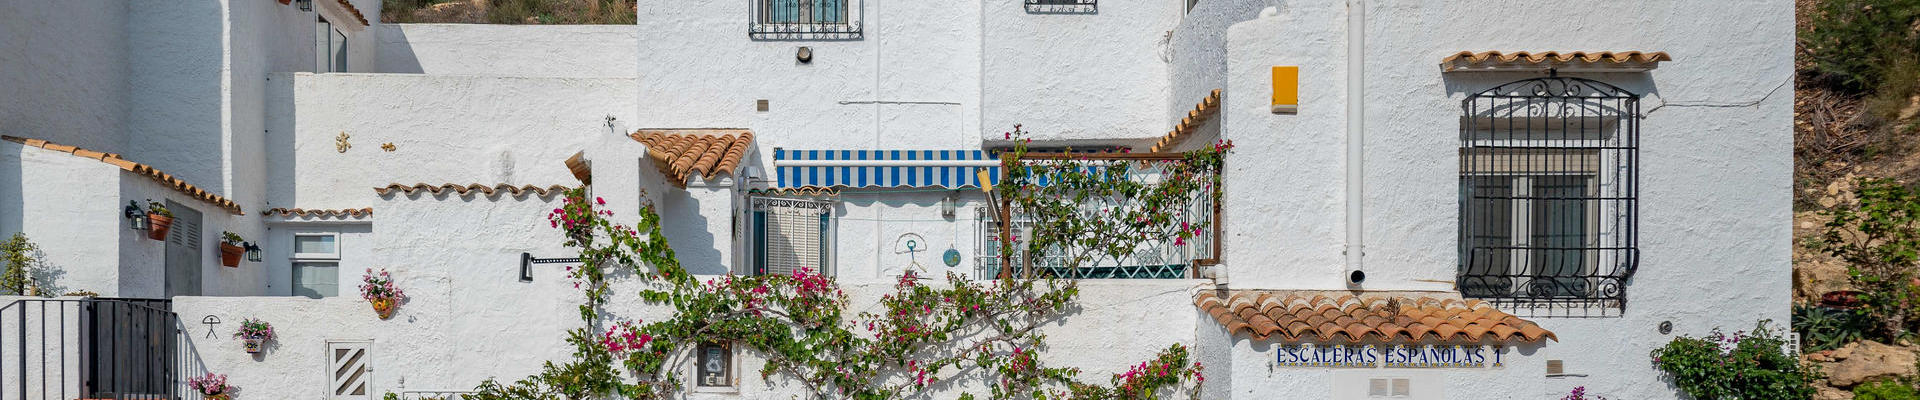 LV777: 2 Bedroom Townhouse for Sale